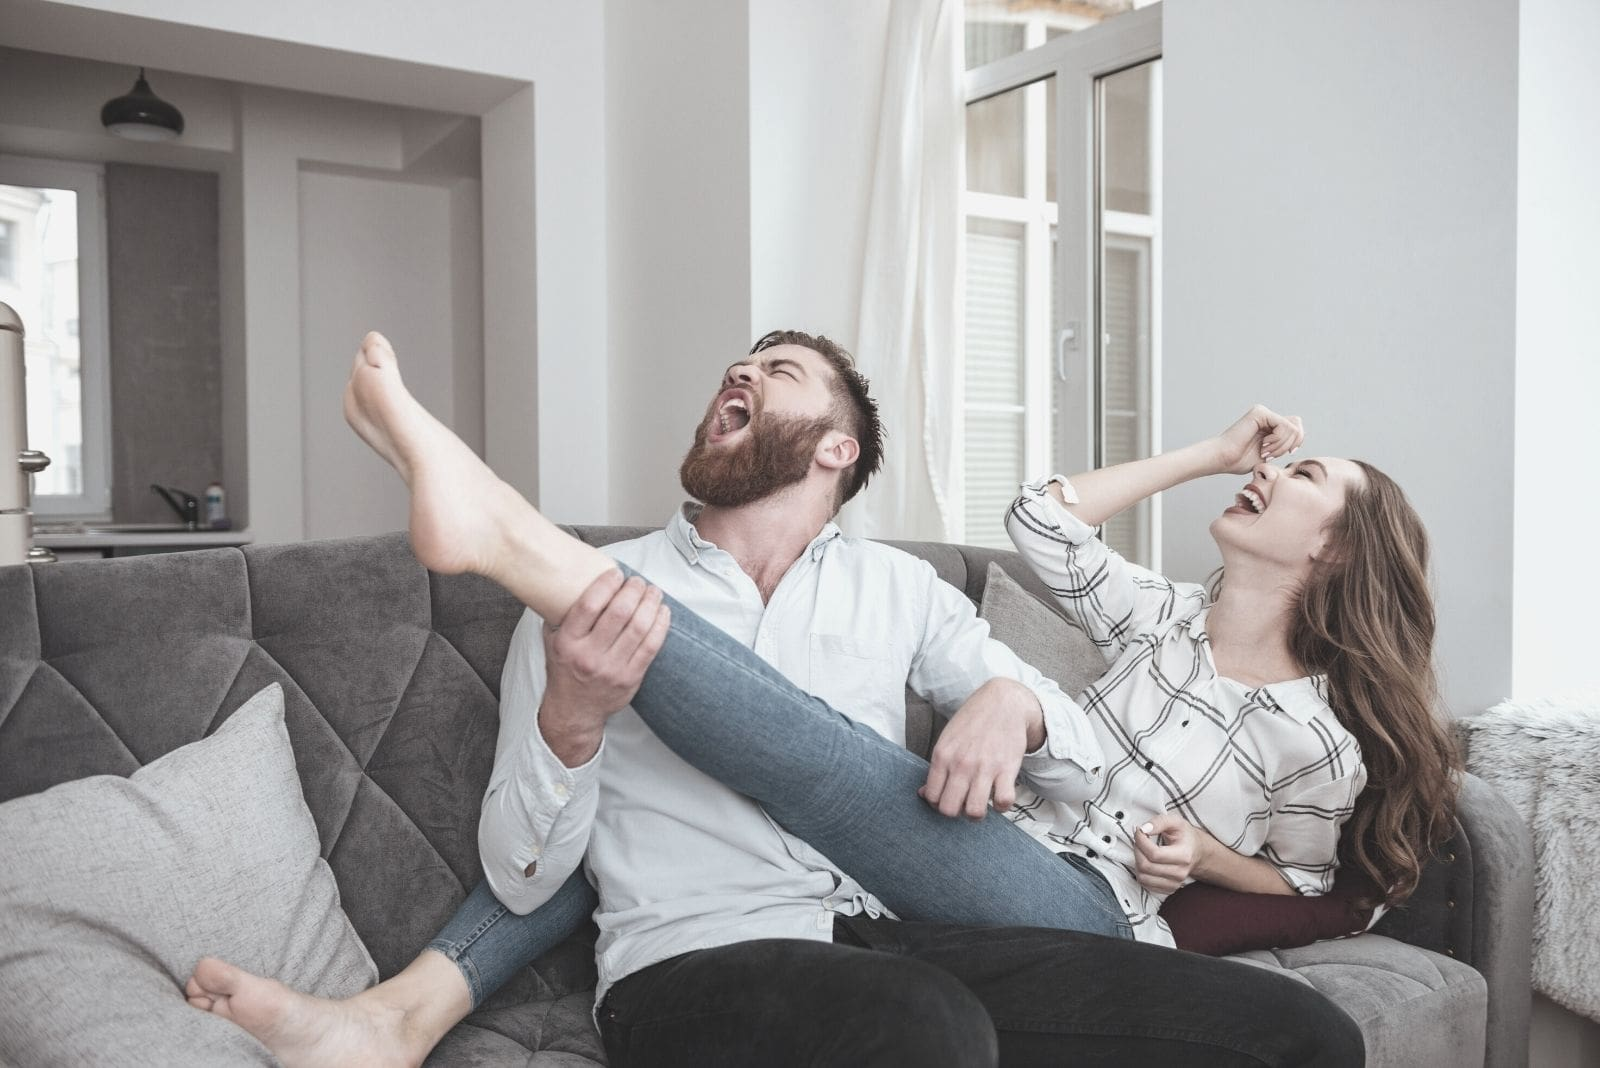 lovely funny couple sitting in sofa with the man imagining the woman's leg is a guitar